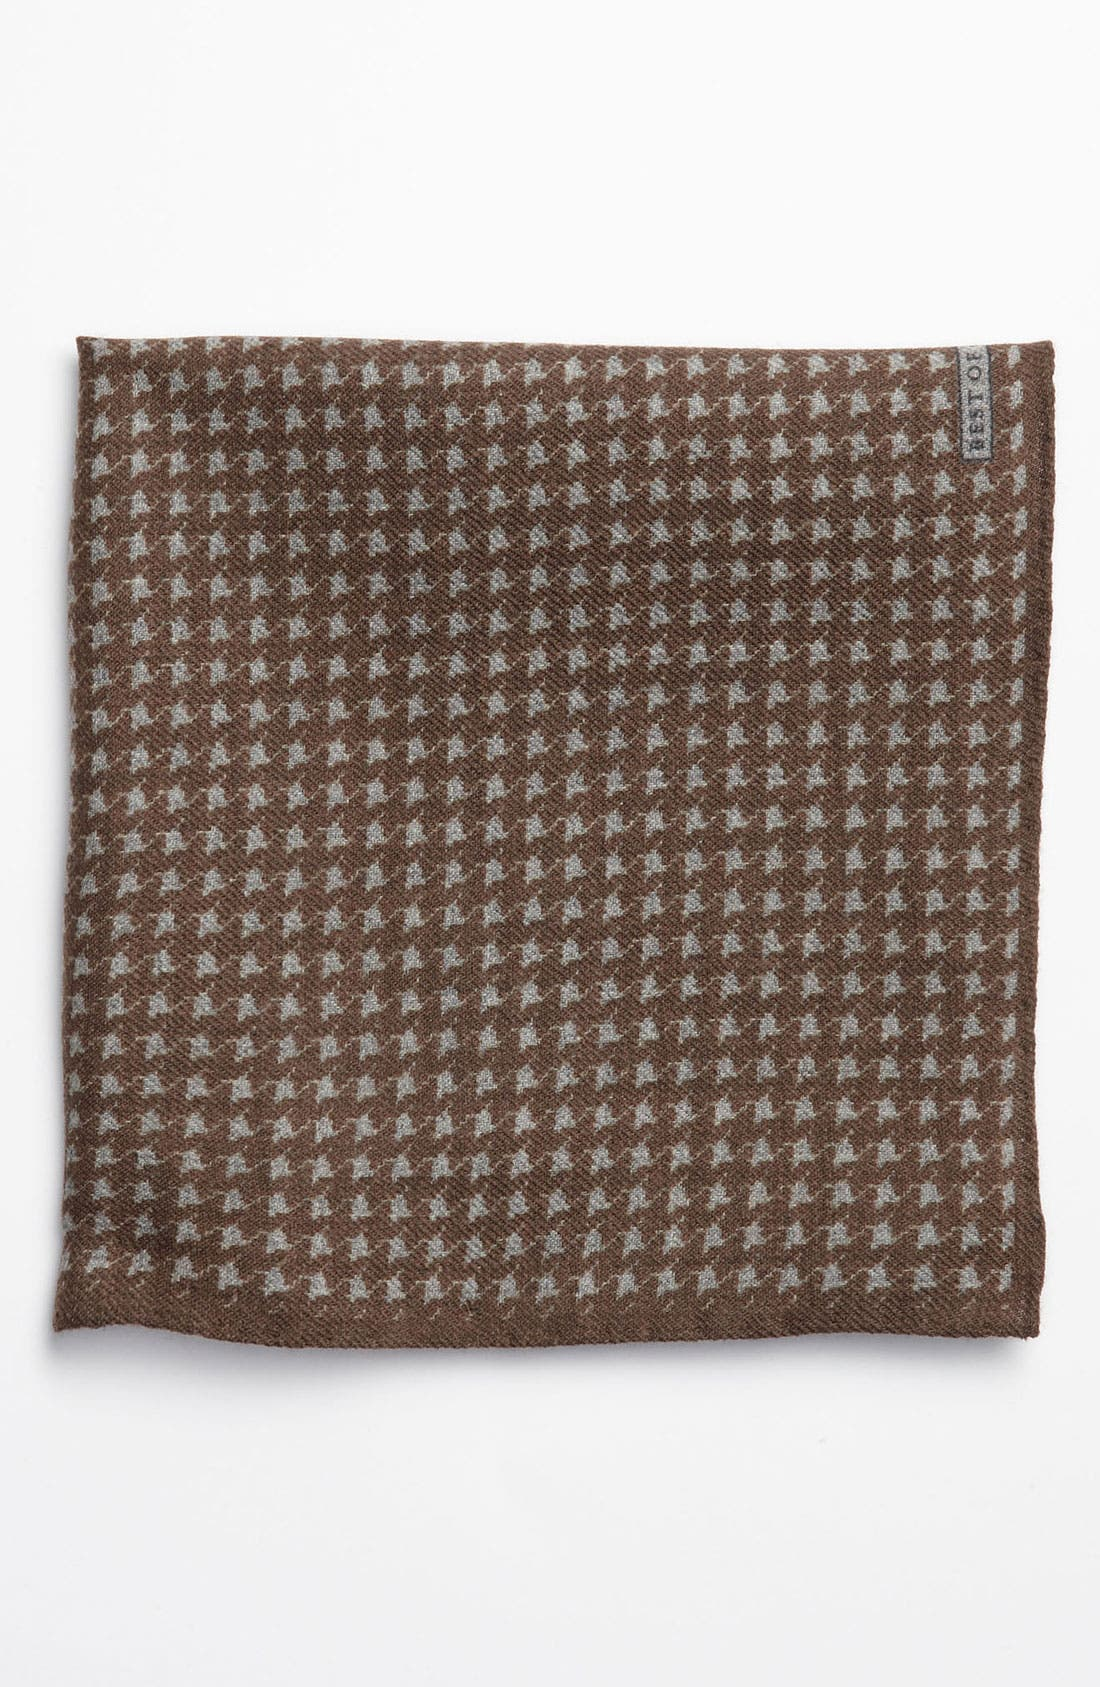 Alternate Image 1 Selected - Robert Talbott Houndstooth Wool Pocket Square